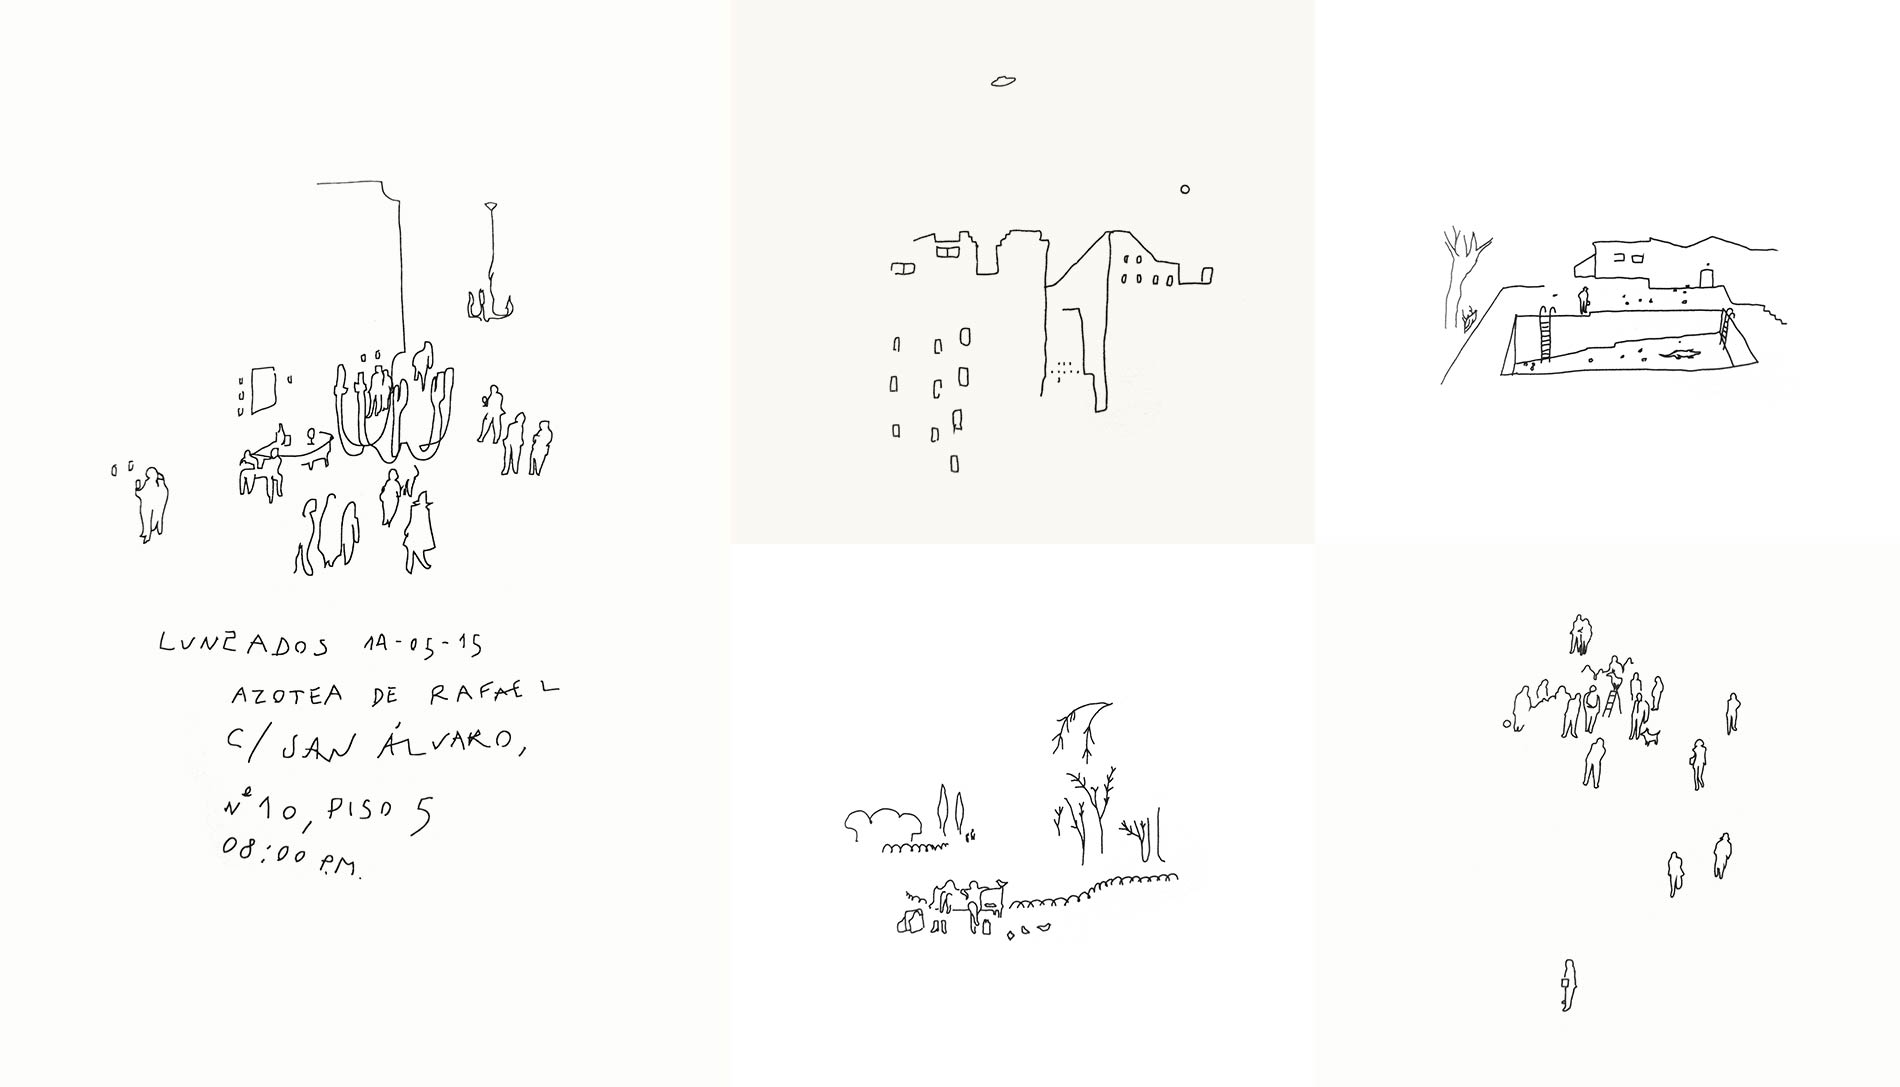 A series of very simple illustrations, made out of black minimalistic strokes on a white background.